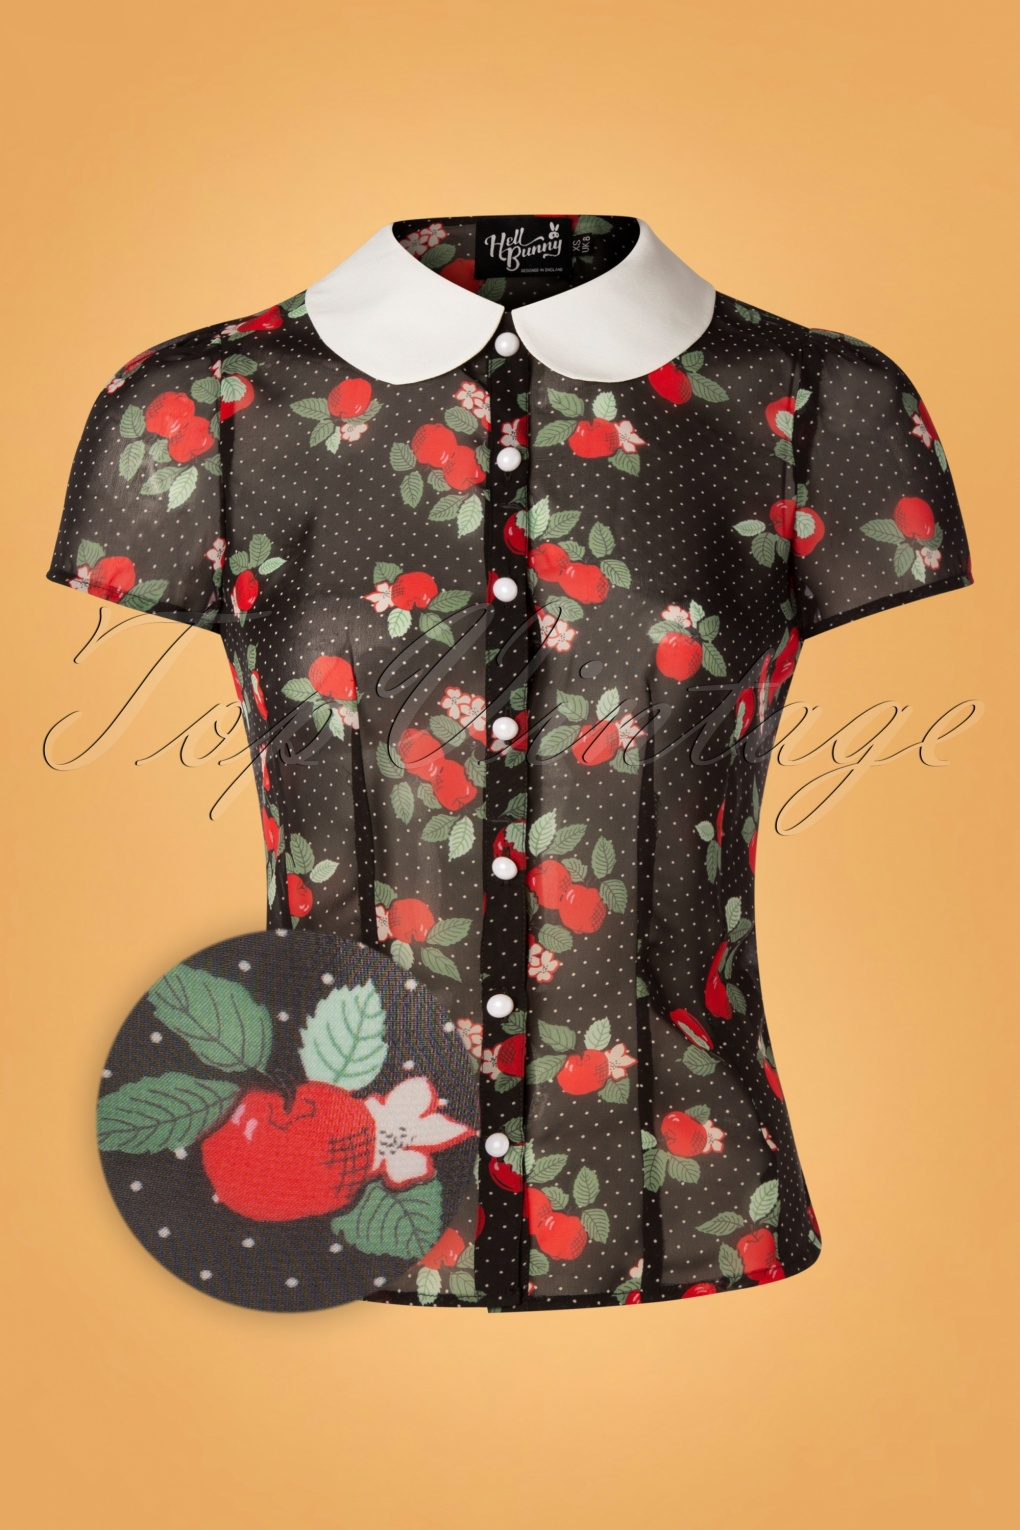 1950s Rockabilly & Pin Up Tops, Blouses, Shirts 50s Apple Blossom Blouse in Black £32.44 AT vintagedancer.com